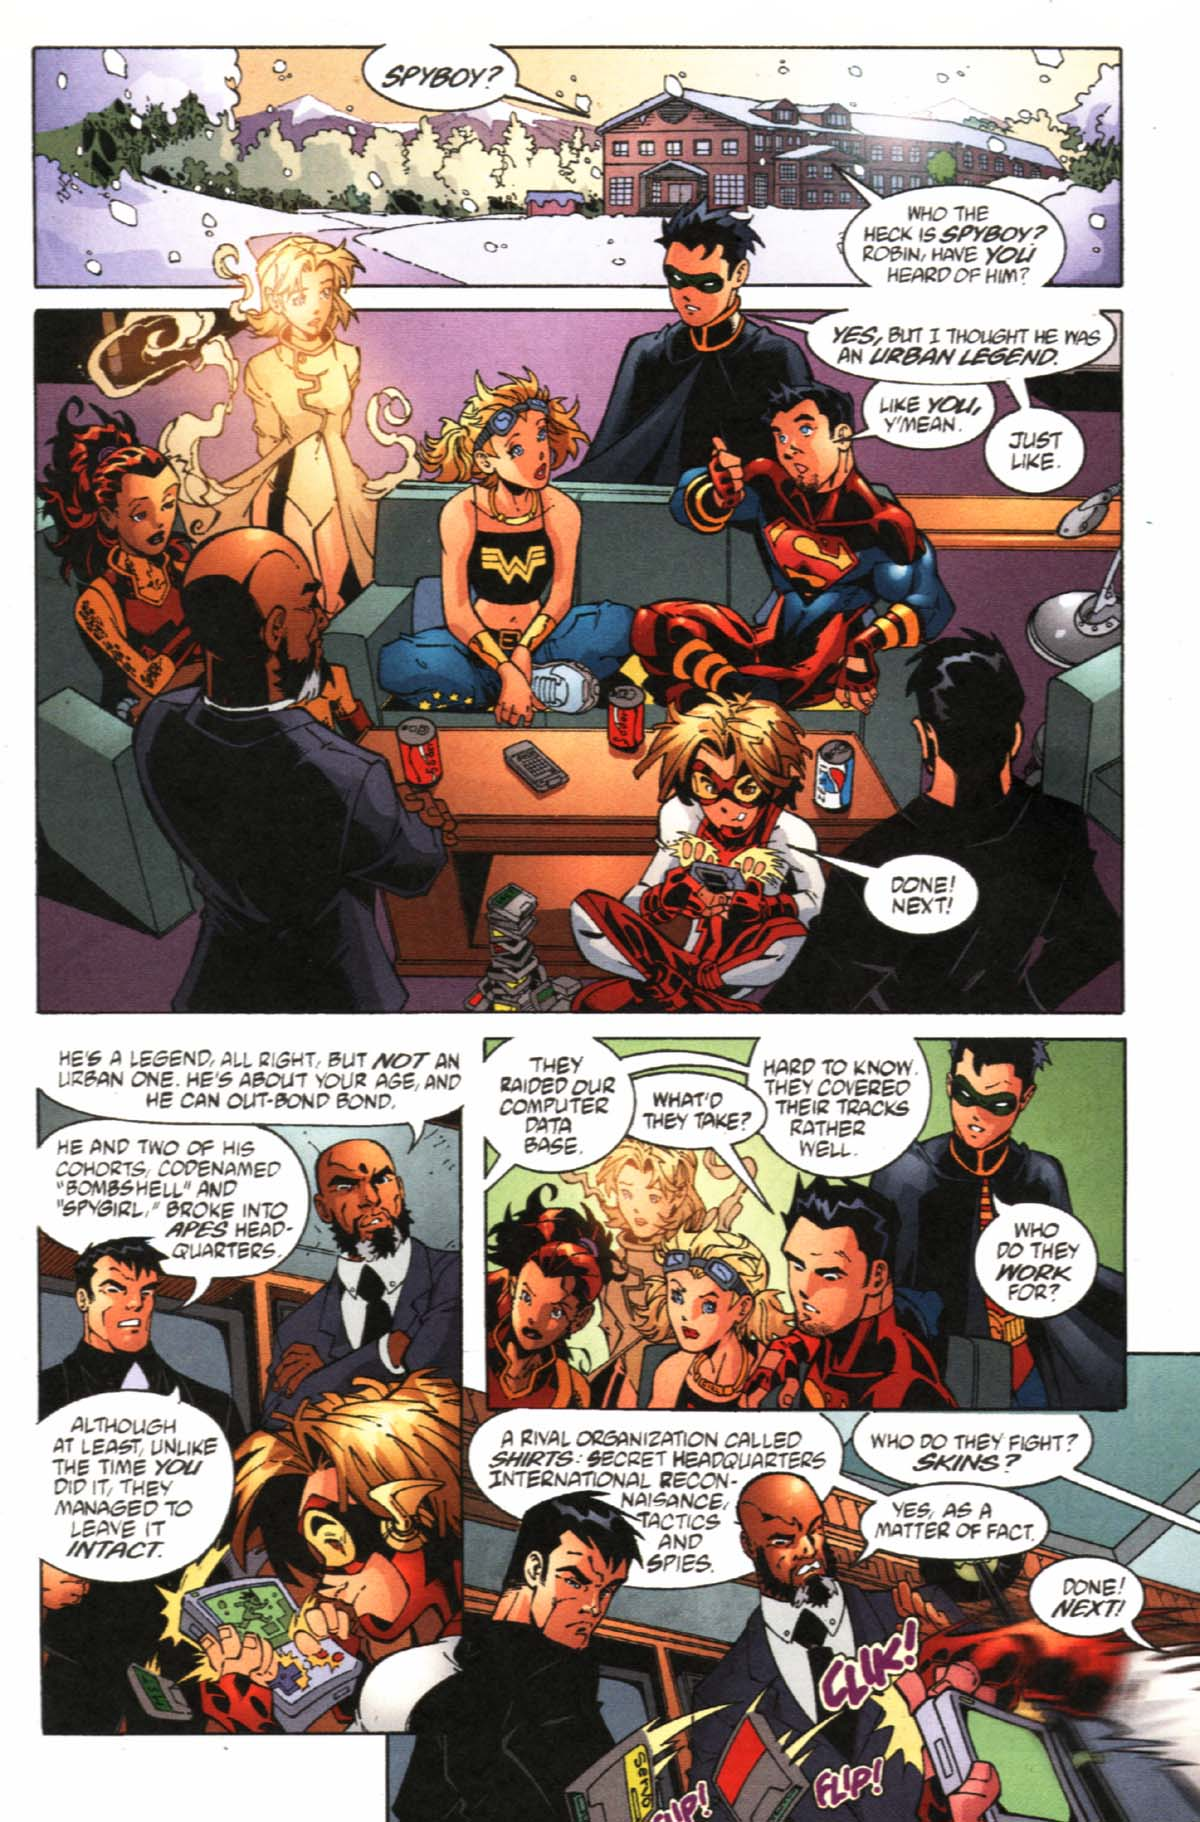 Read online SpyBoy/Young Justice comic -  Issue #1 - 9